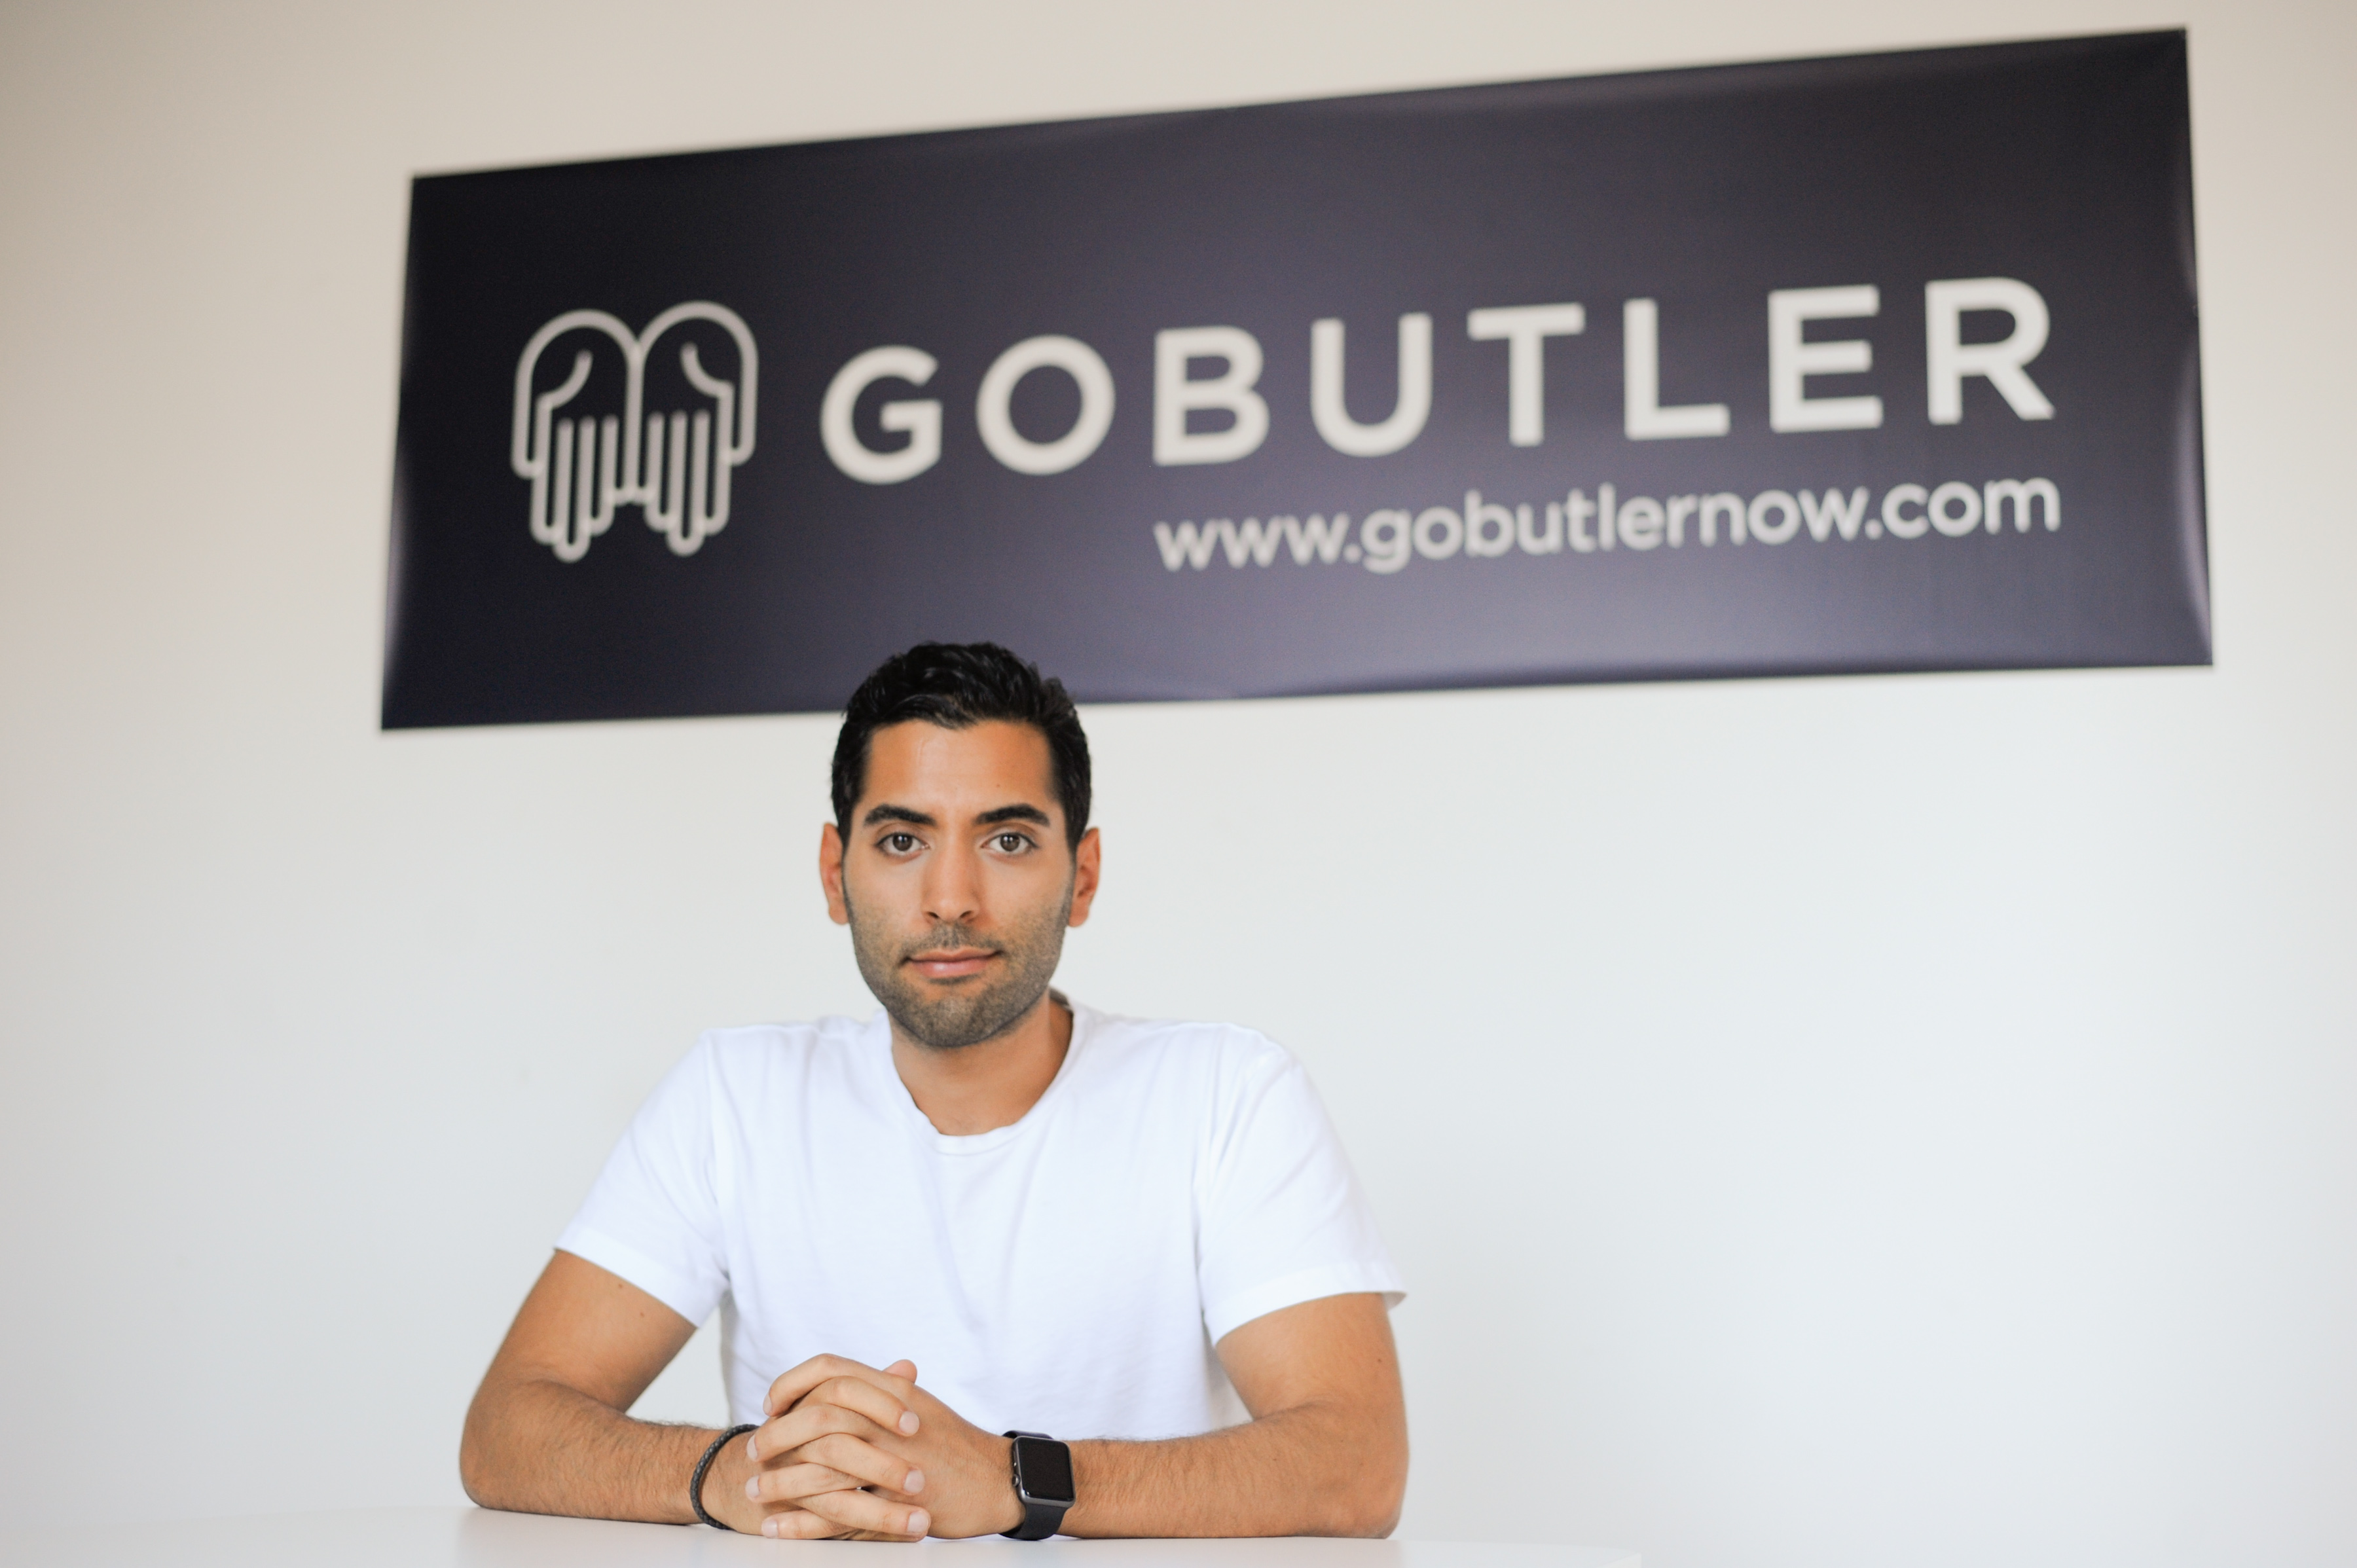 Navid Hadzaad, CEO of GoButler, in their office in the Meatpacking District of Manhattan on Thursday, July 23, 2015. Photograph by Casey Kelbaugh